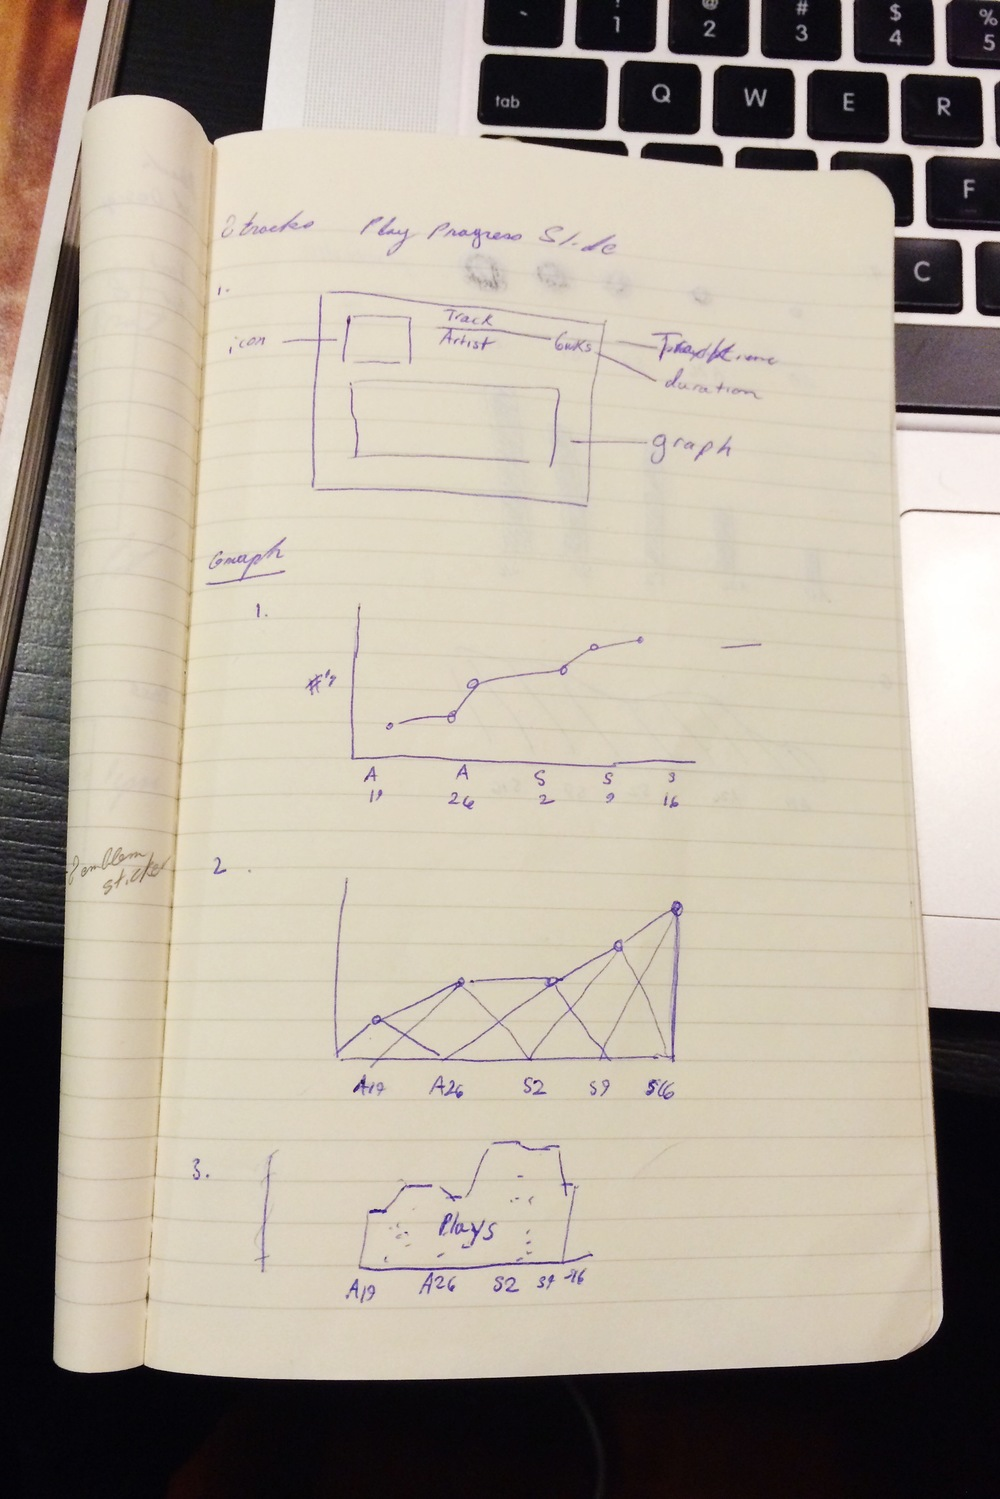 Sketches for Campaign Playlist Track Progress slides and graphs